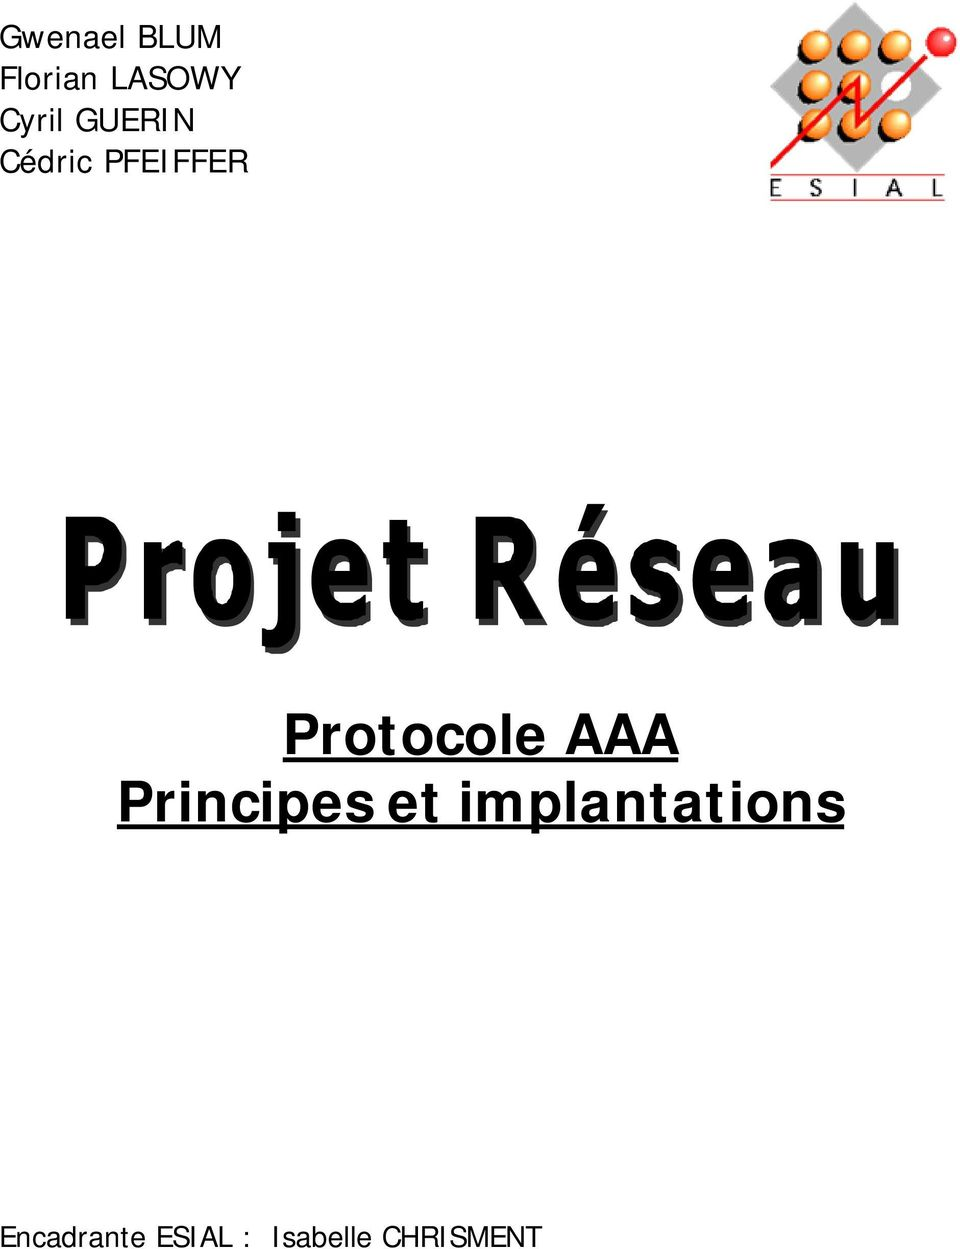 AAA Principes et implantations